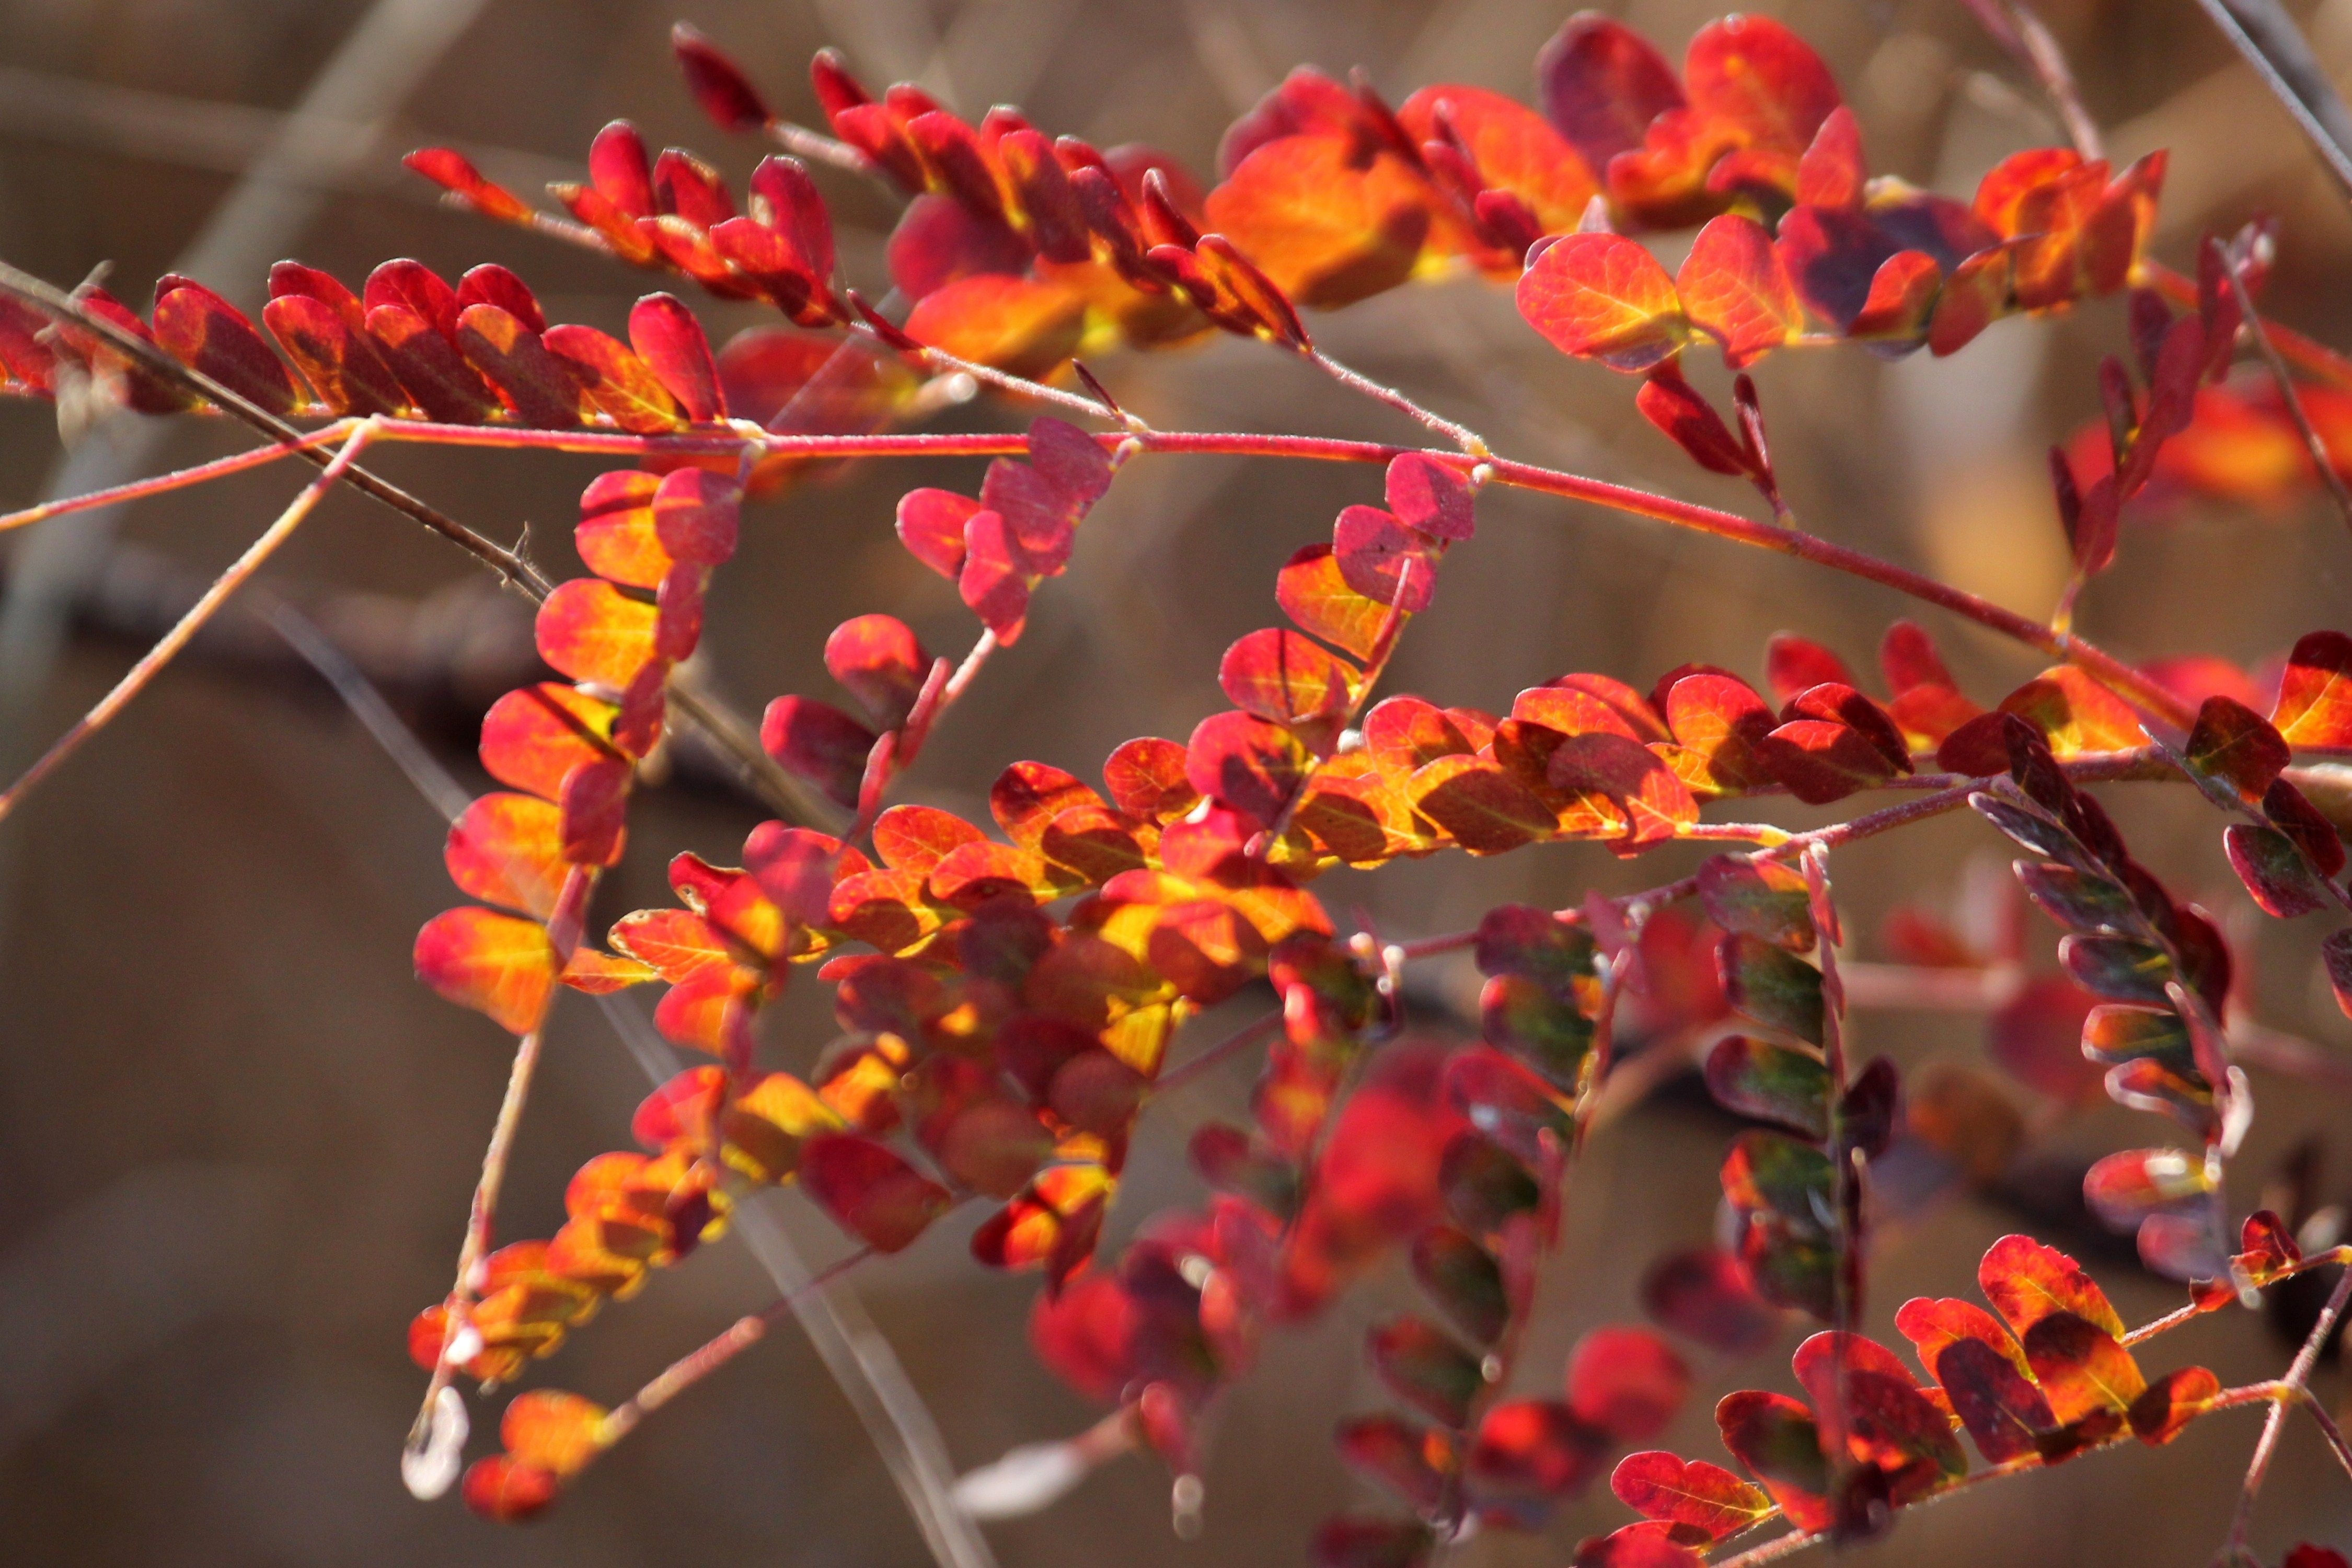 Branches of a plant turning red in the autumn season.